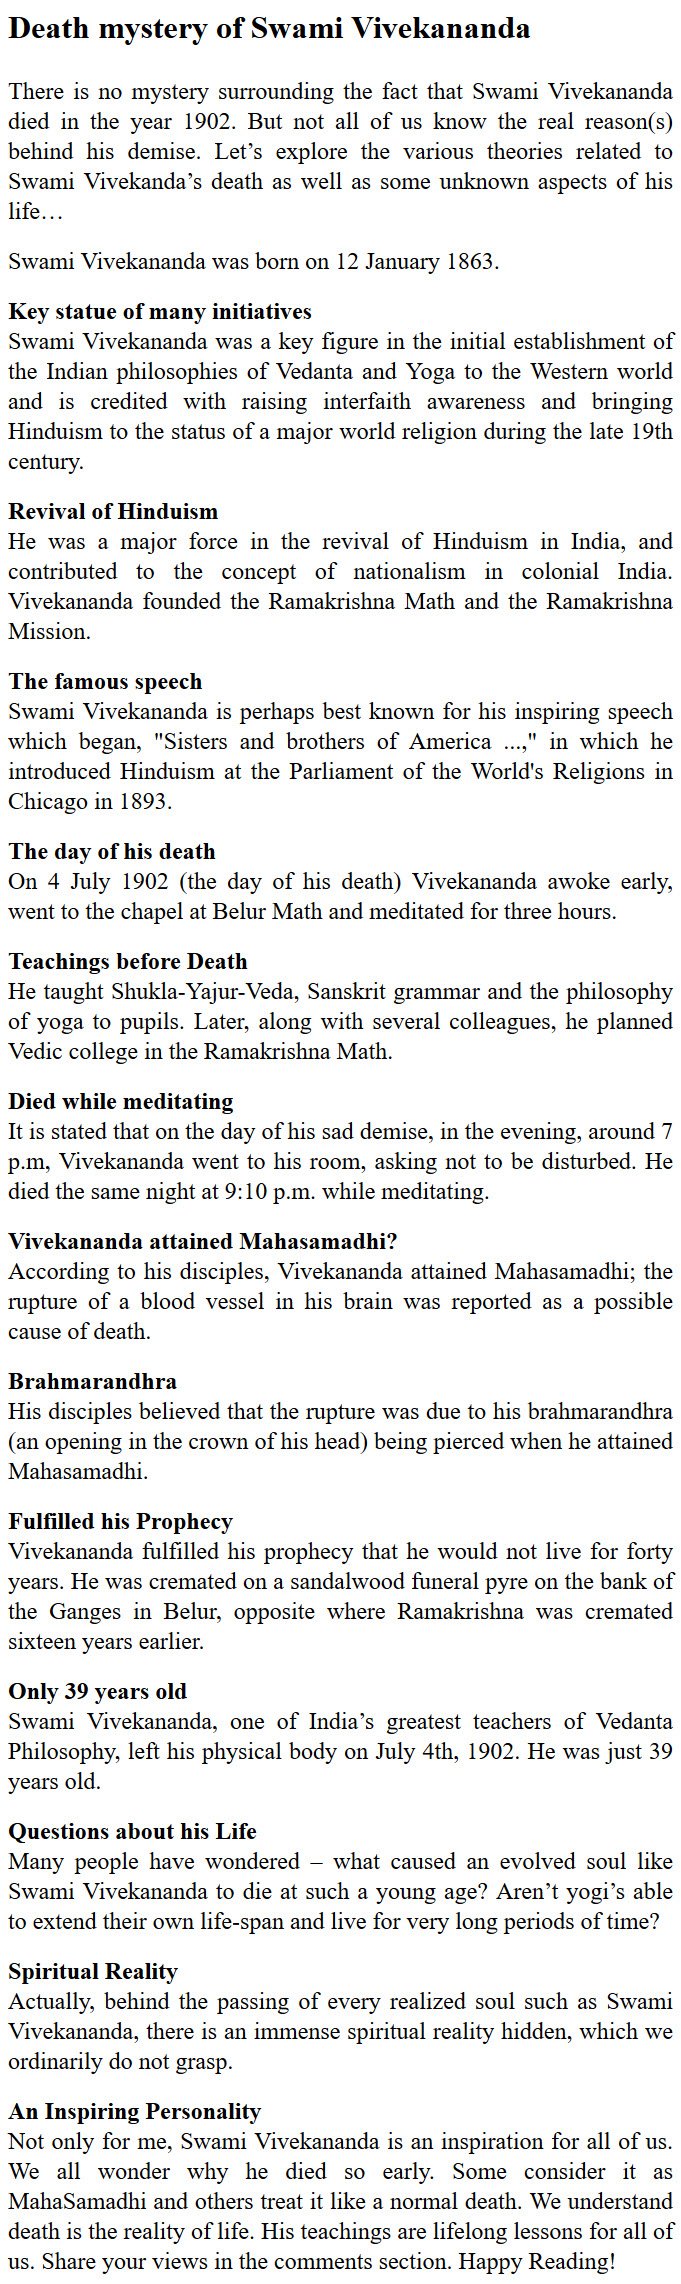 essay on swami vivekananda in hindi essay swami vivekananda swami vivekananda the social encyclopedia gujarati essay on swachata abhiyan an error occurred